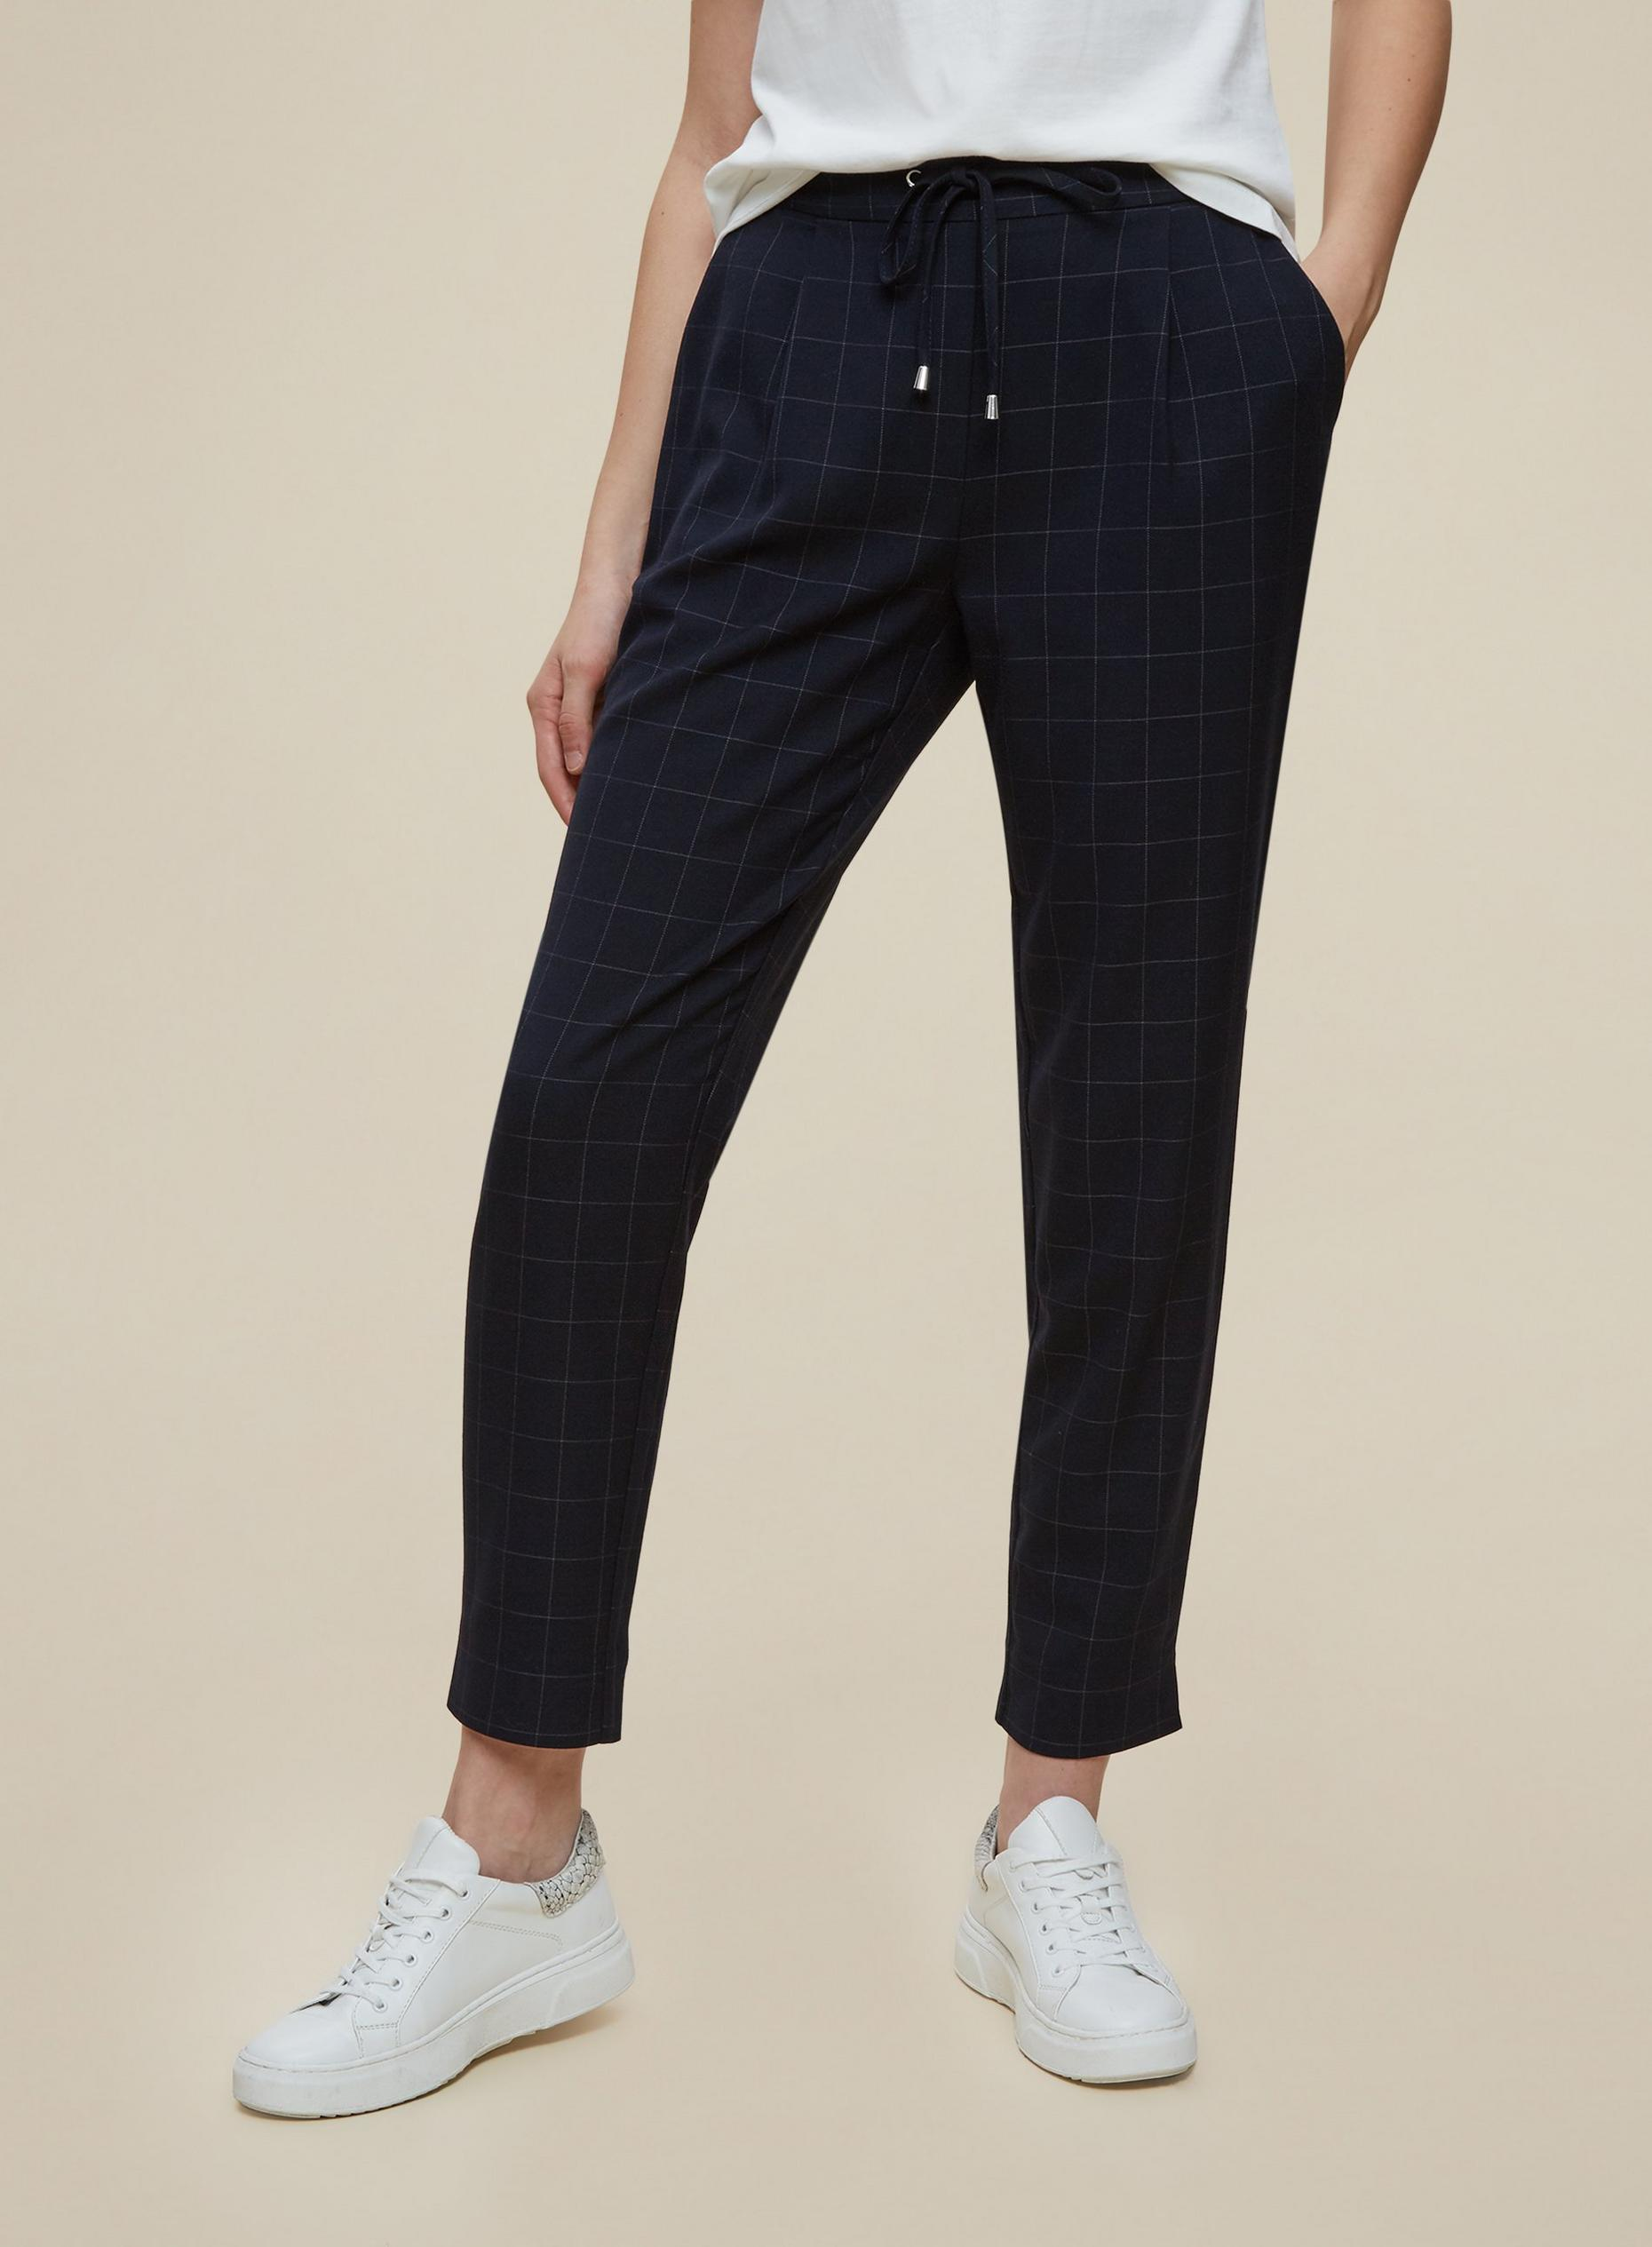 Navy Check Formal Jogger